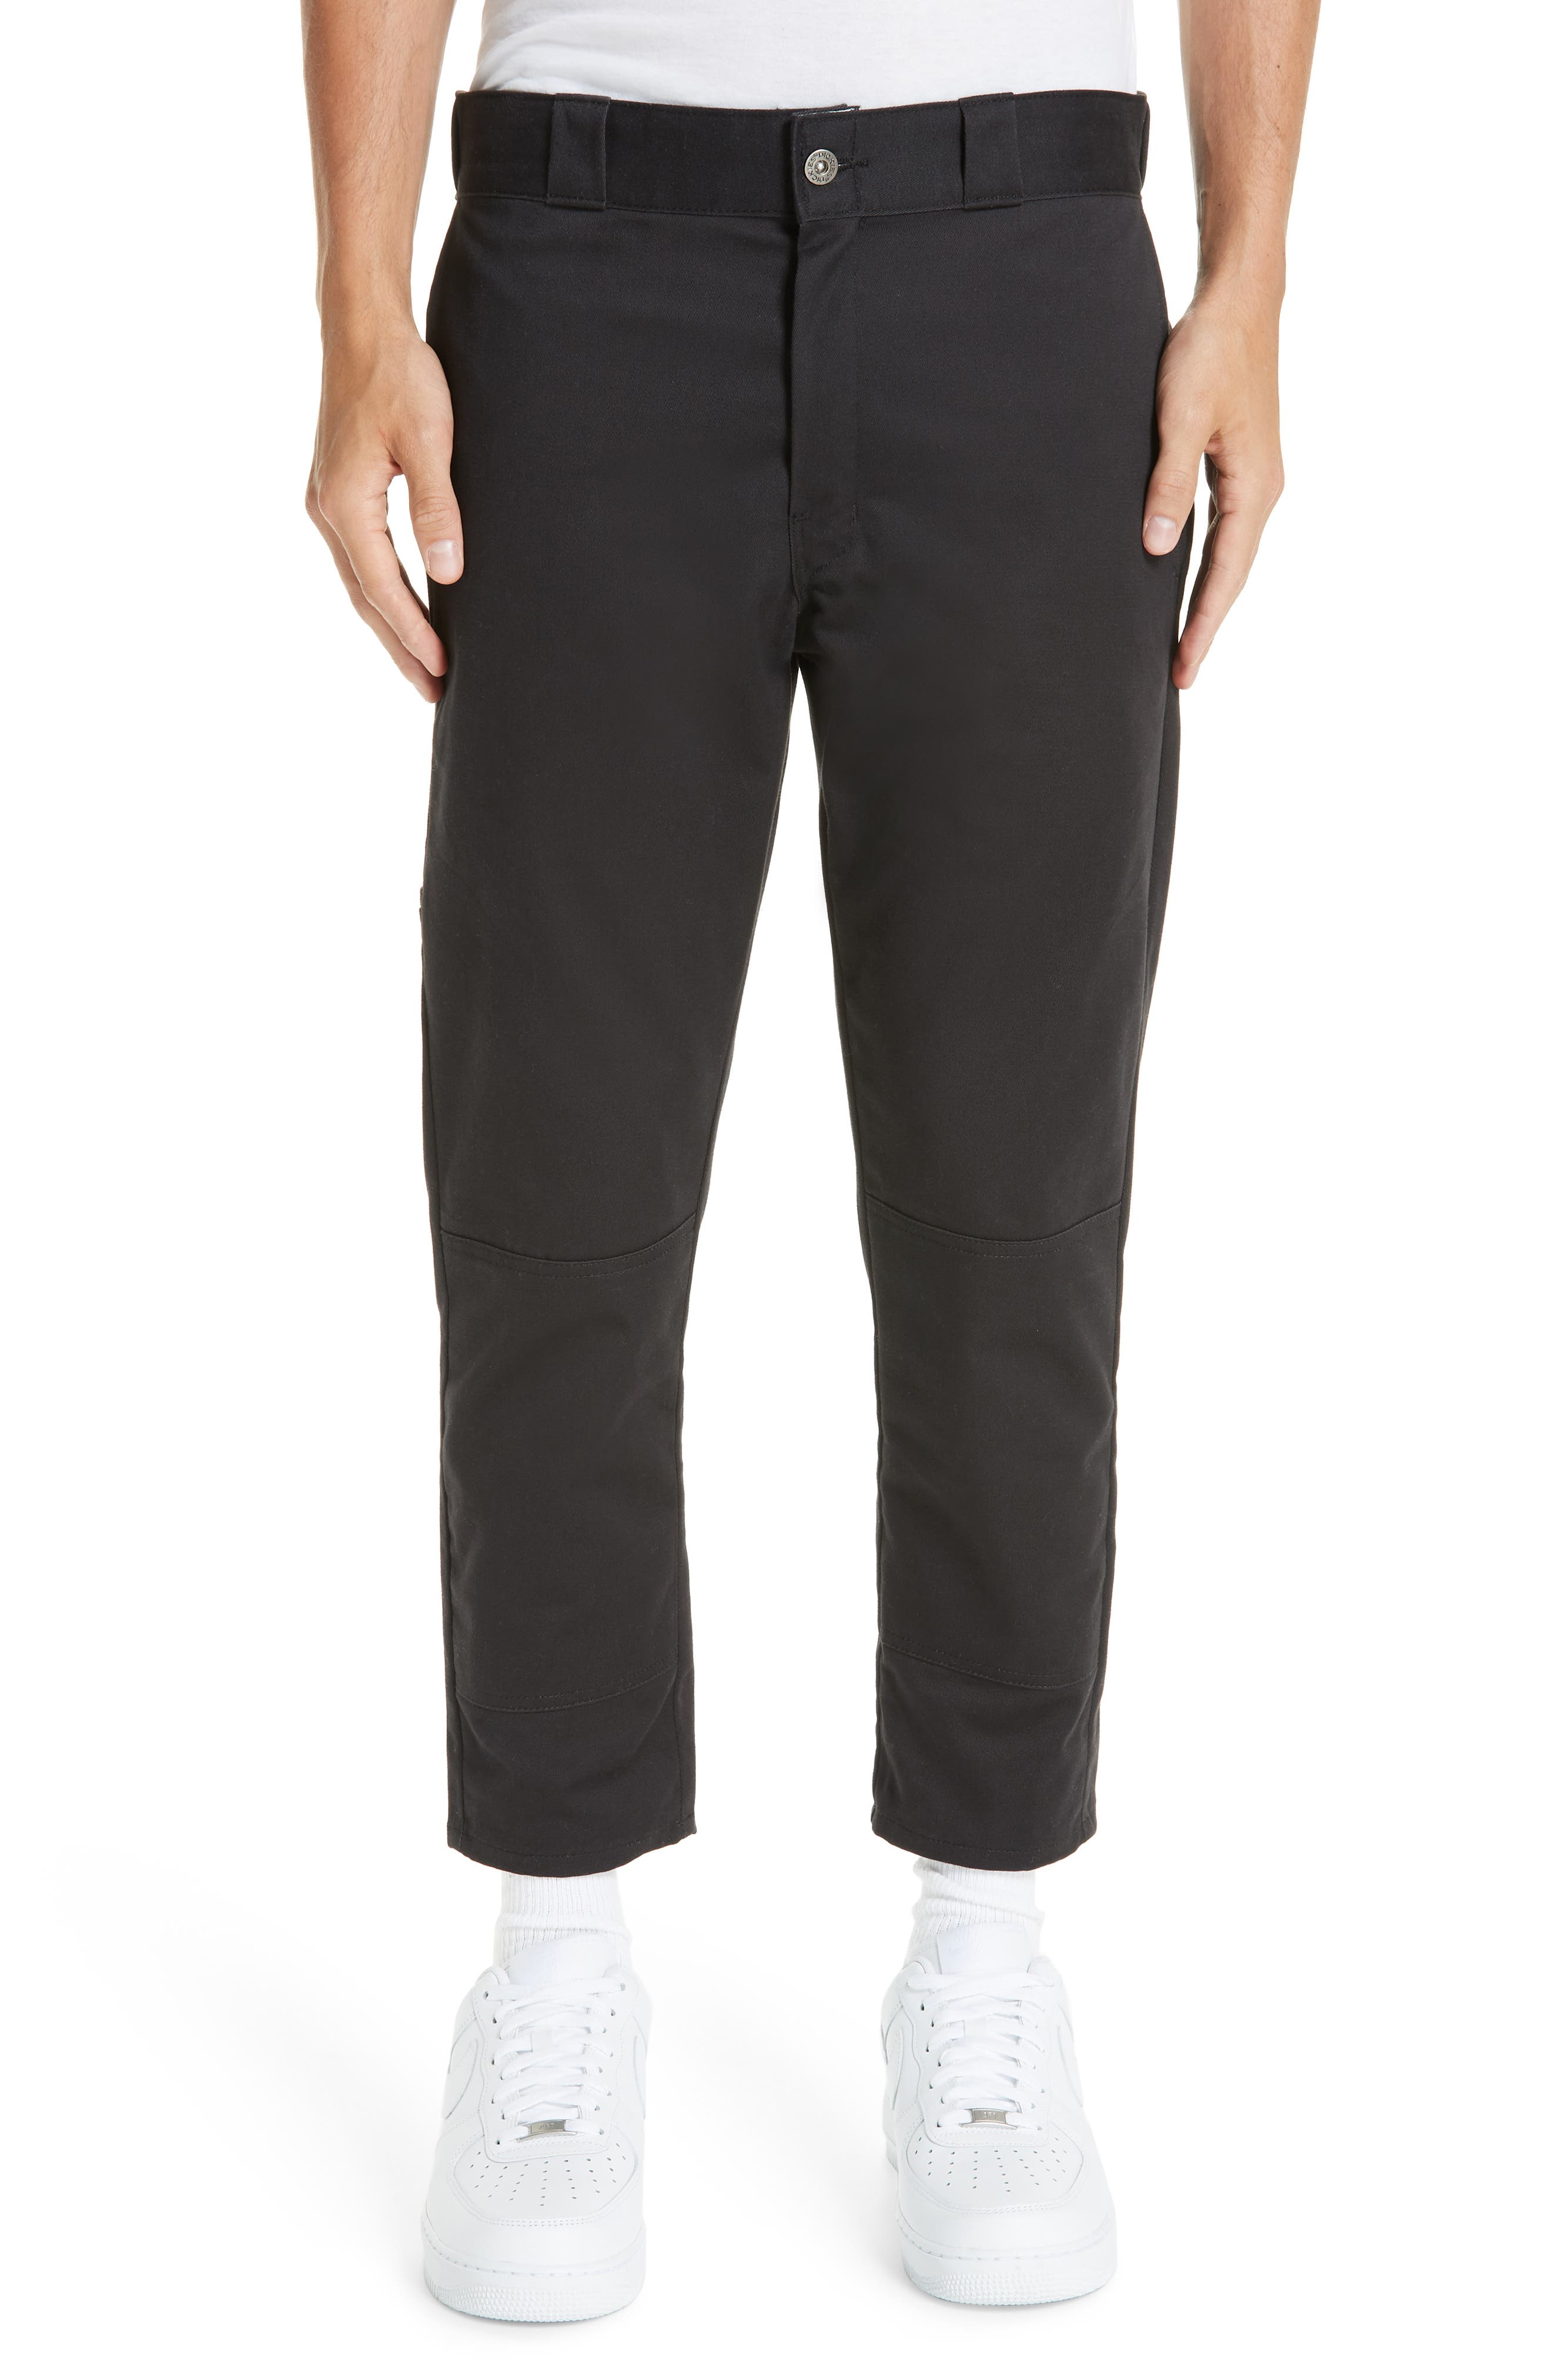 Bedwin & The Heartbreakers X Dickies Graves Cargo Pants, Black